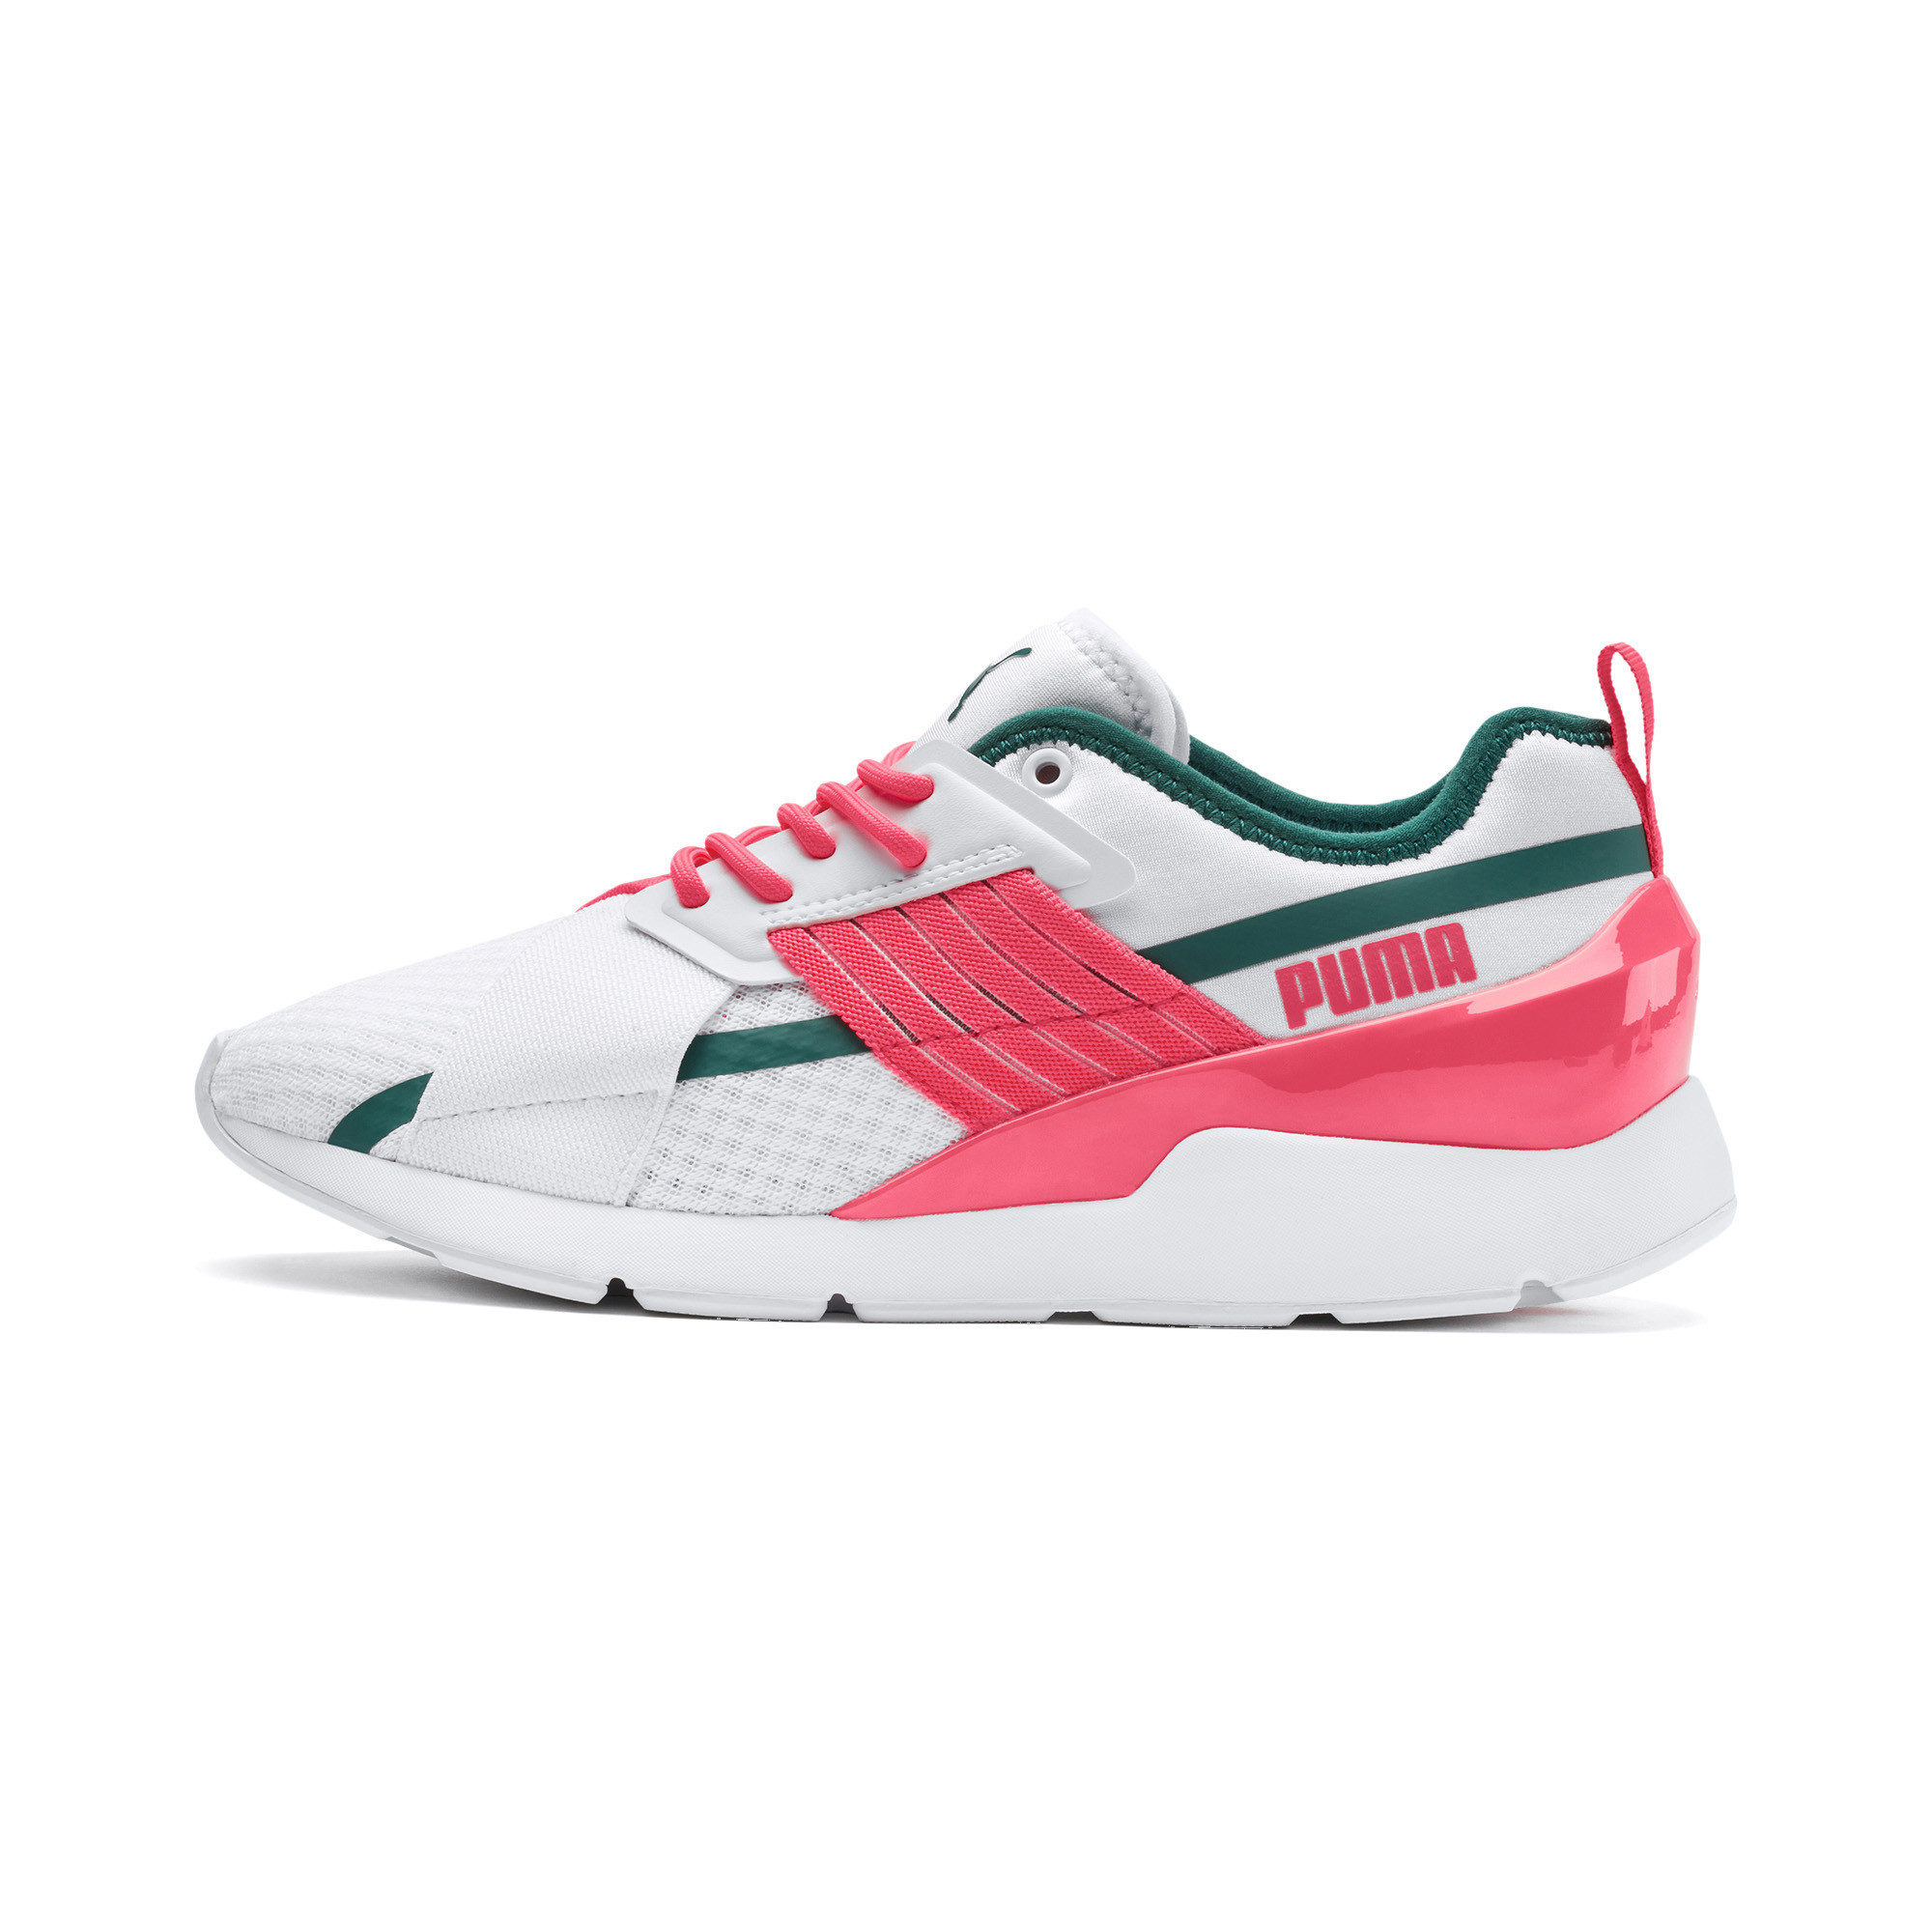 PUMA-Muse-X-2-Women-039-s-Sneakers-Women-Shoe-Evolution thumbnail 4